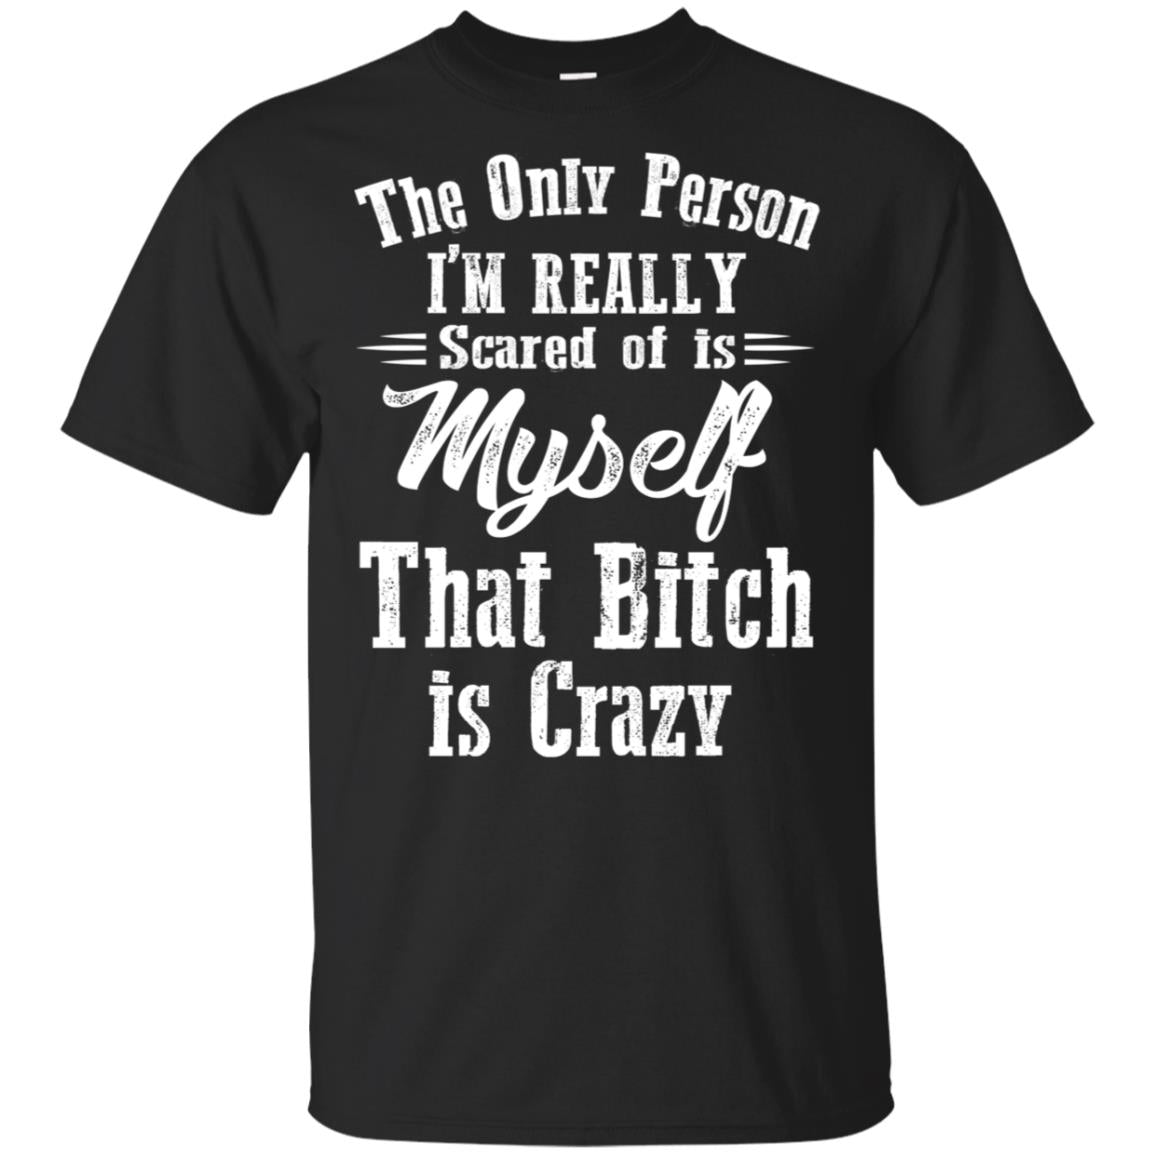 The only Person I'm really scared of is myself that bitch is crazy